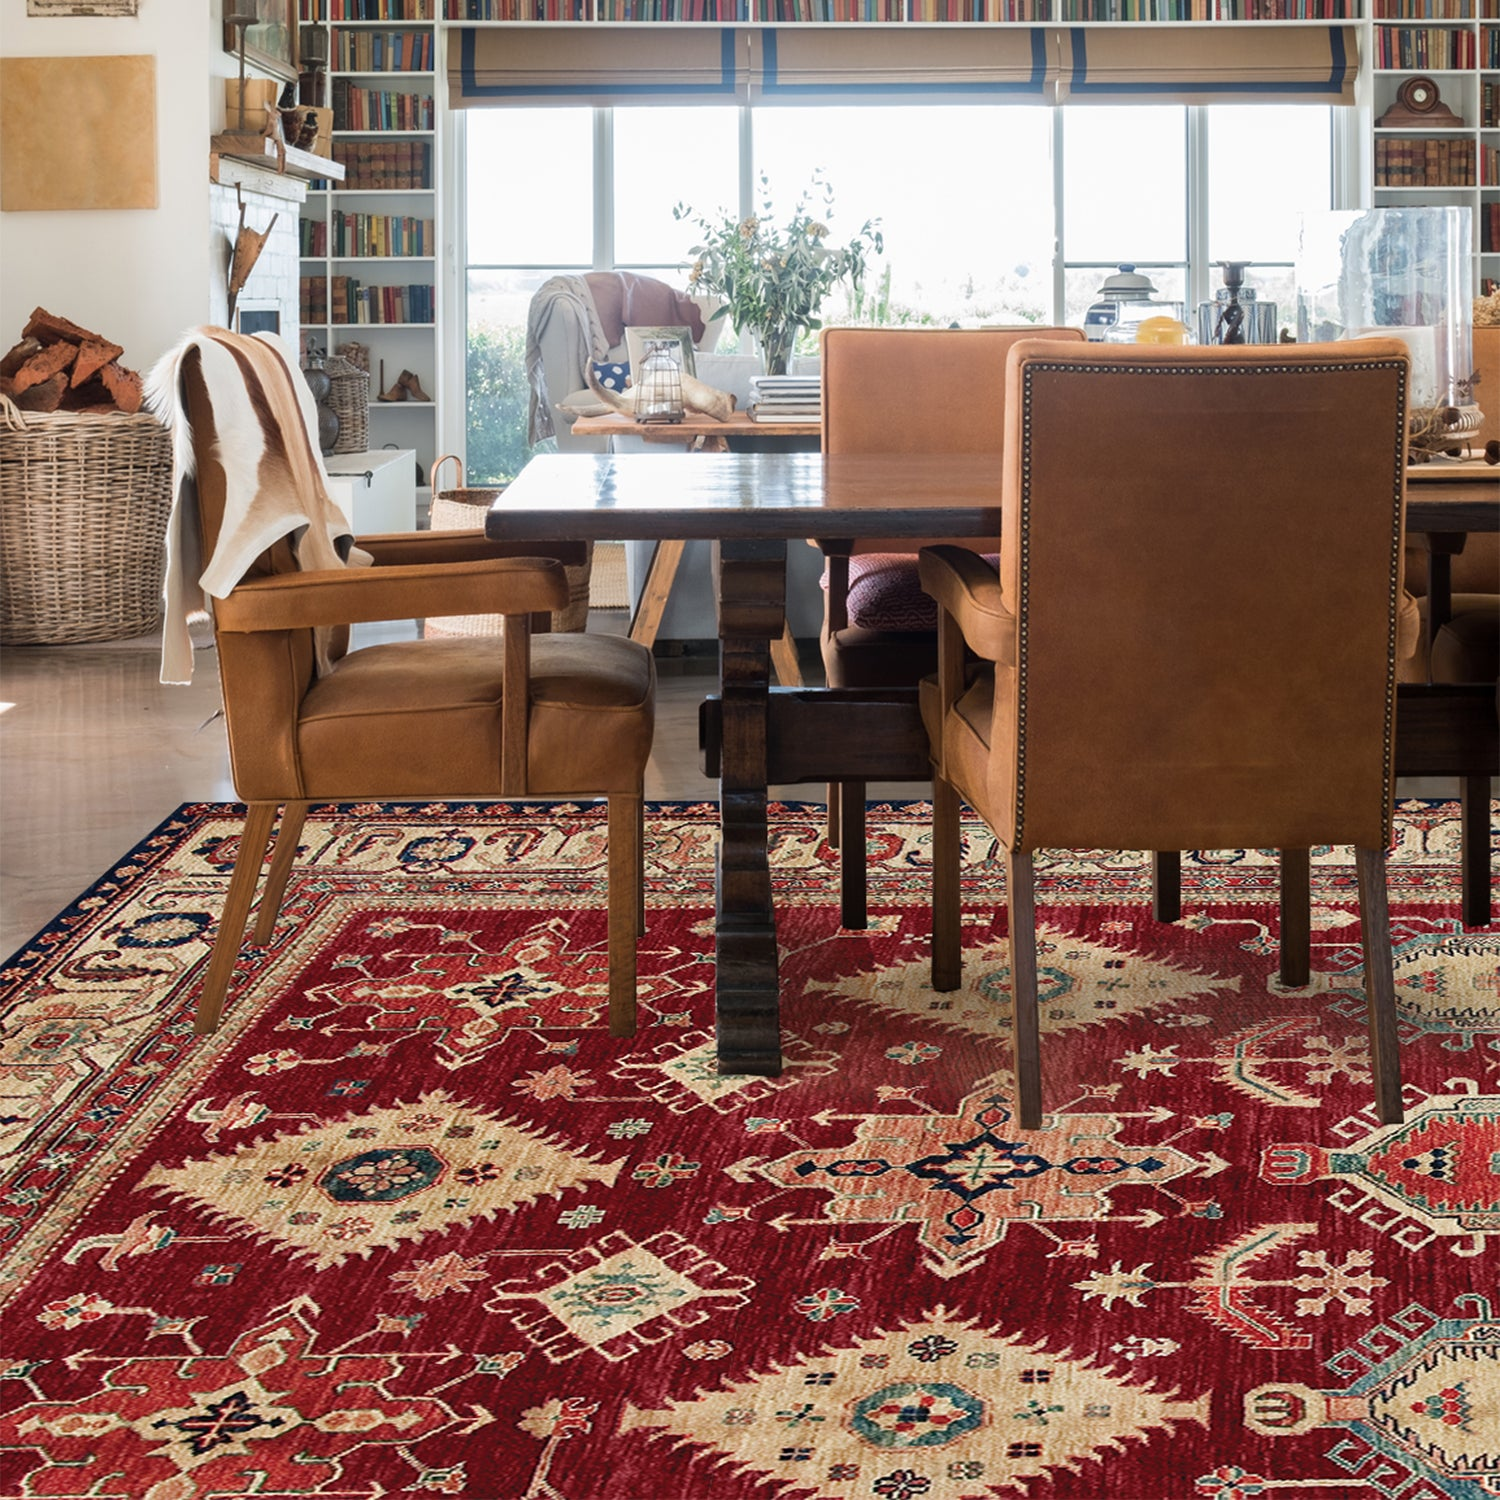 RUGGABLE Washable Indoor/ Outdoor Stain Resistant Pet Area Rug Noor Ruby  (8' x 10') - 8' x 10' - Free Shipping Today - Overstock.com - 21866201